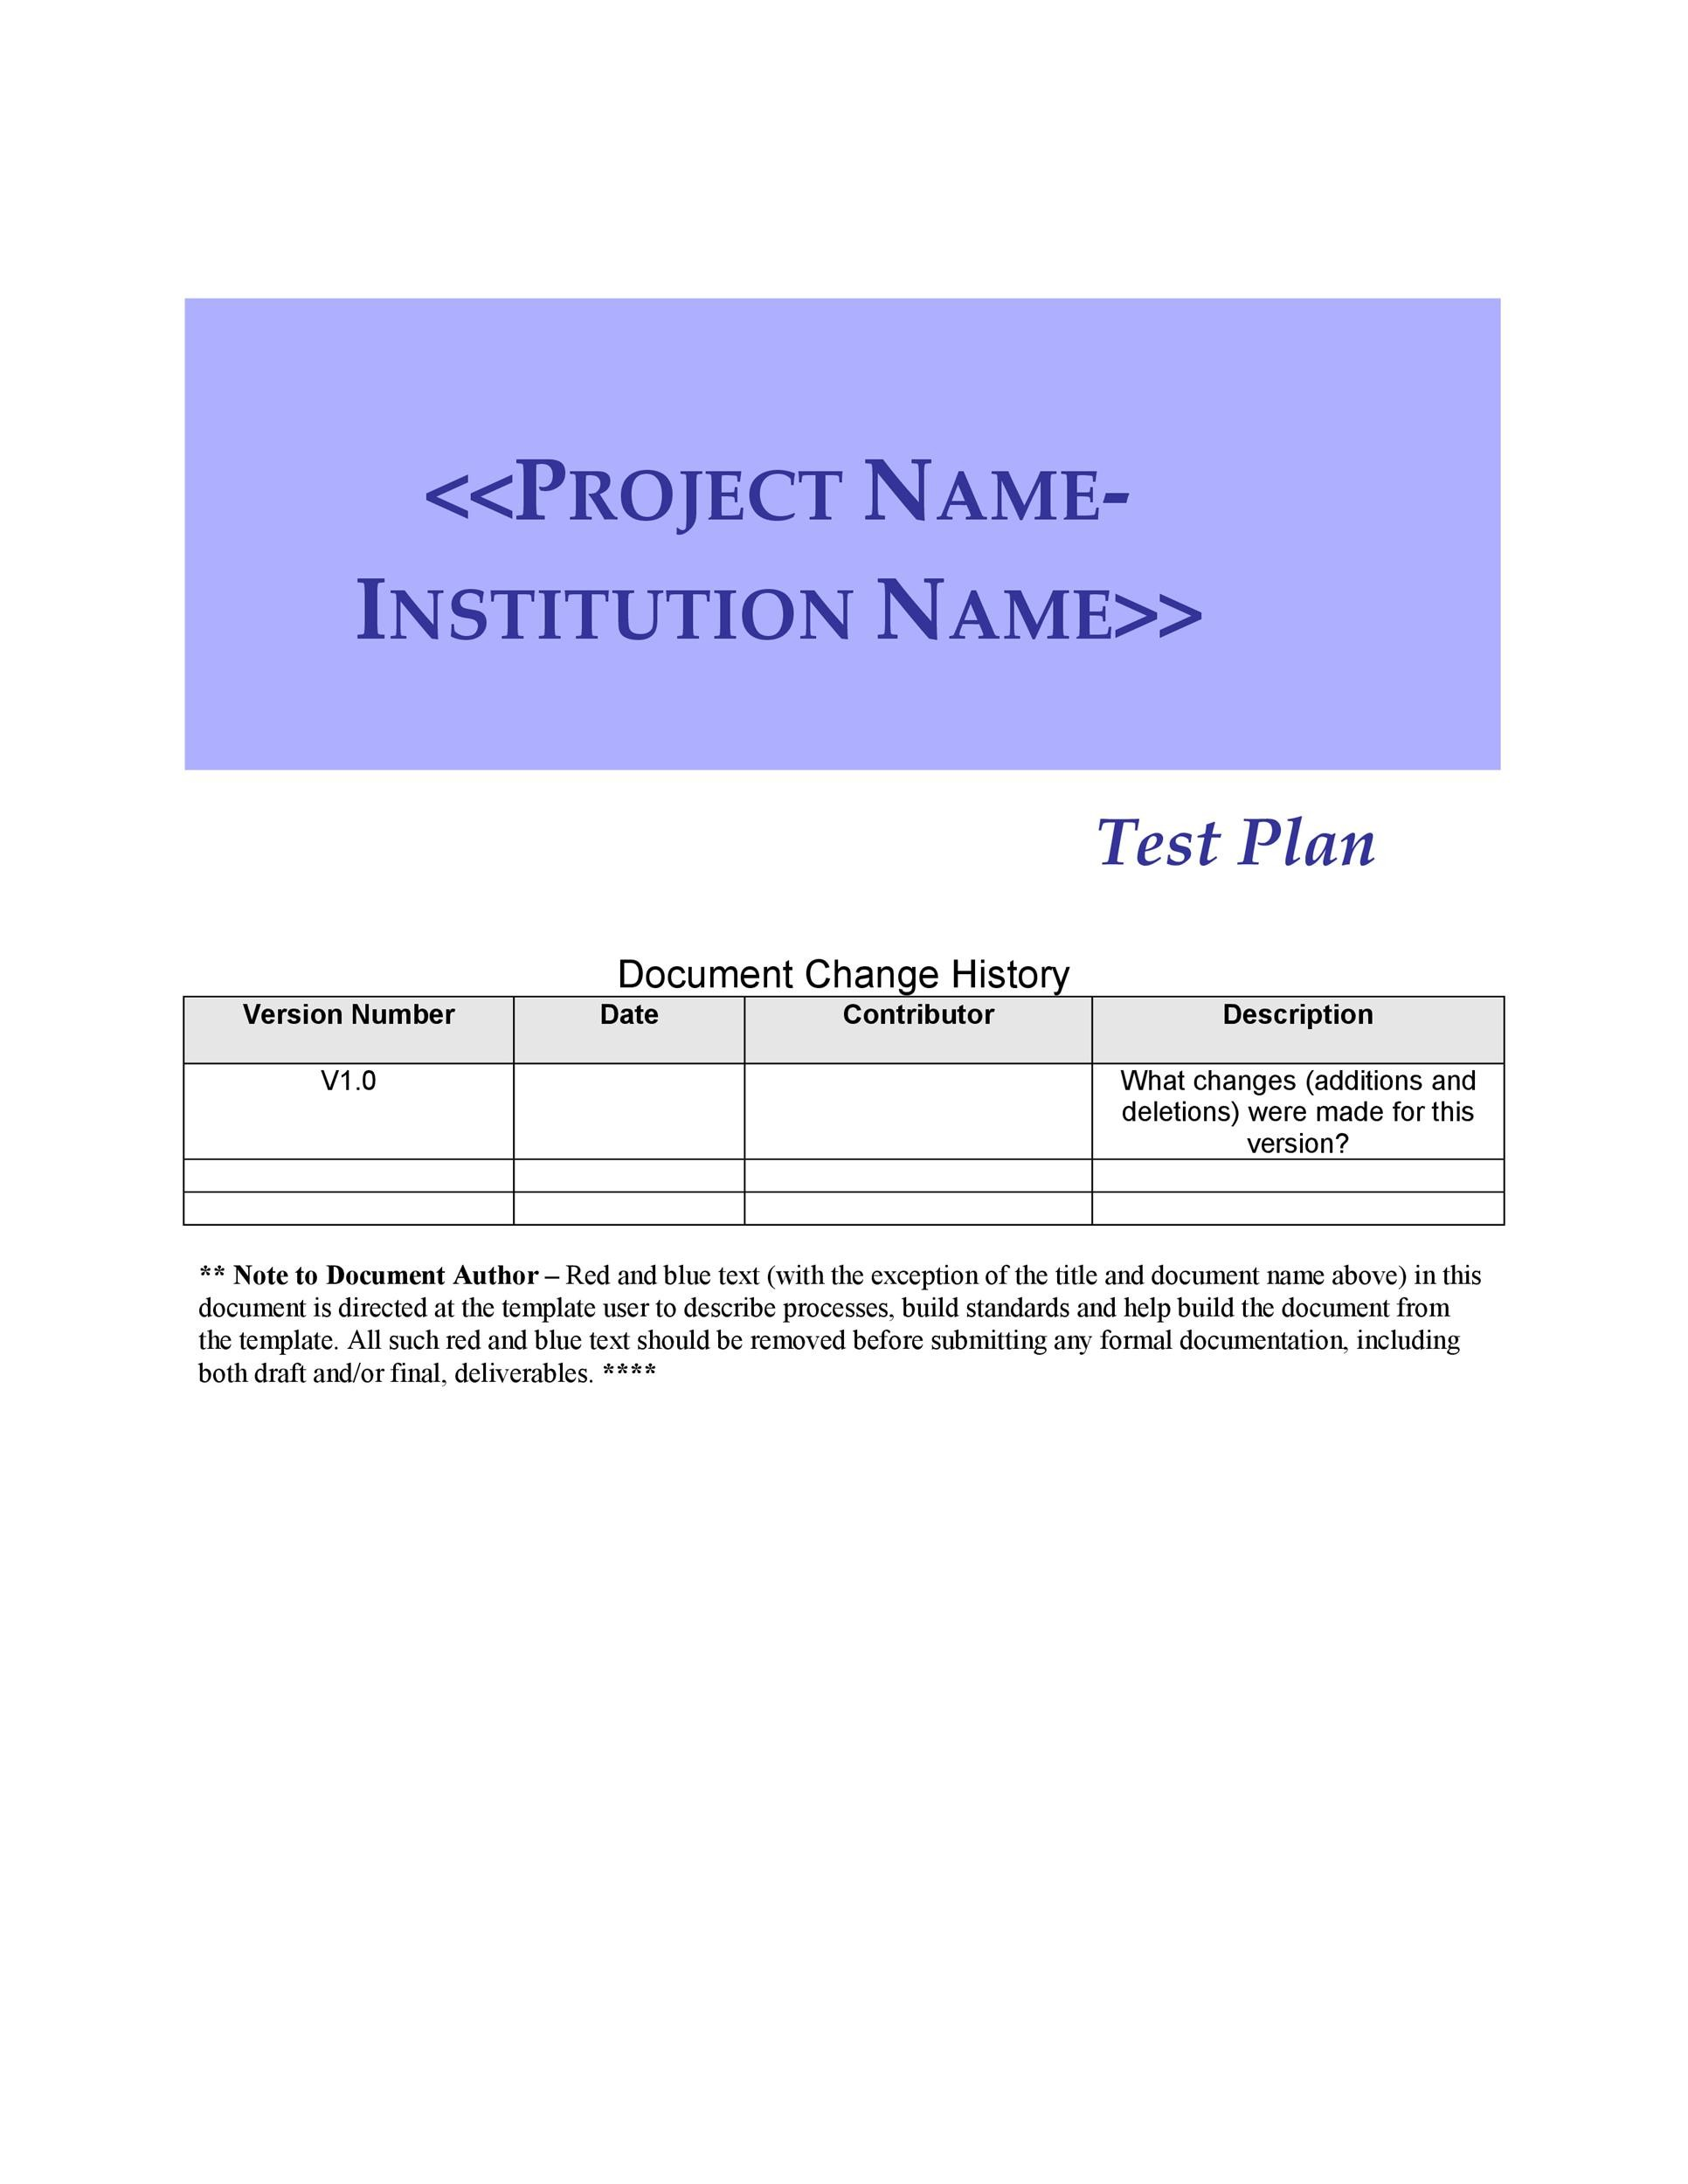 35 Software Test Plan Templates  Examples ᐅ Template Lab